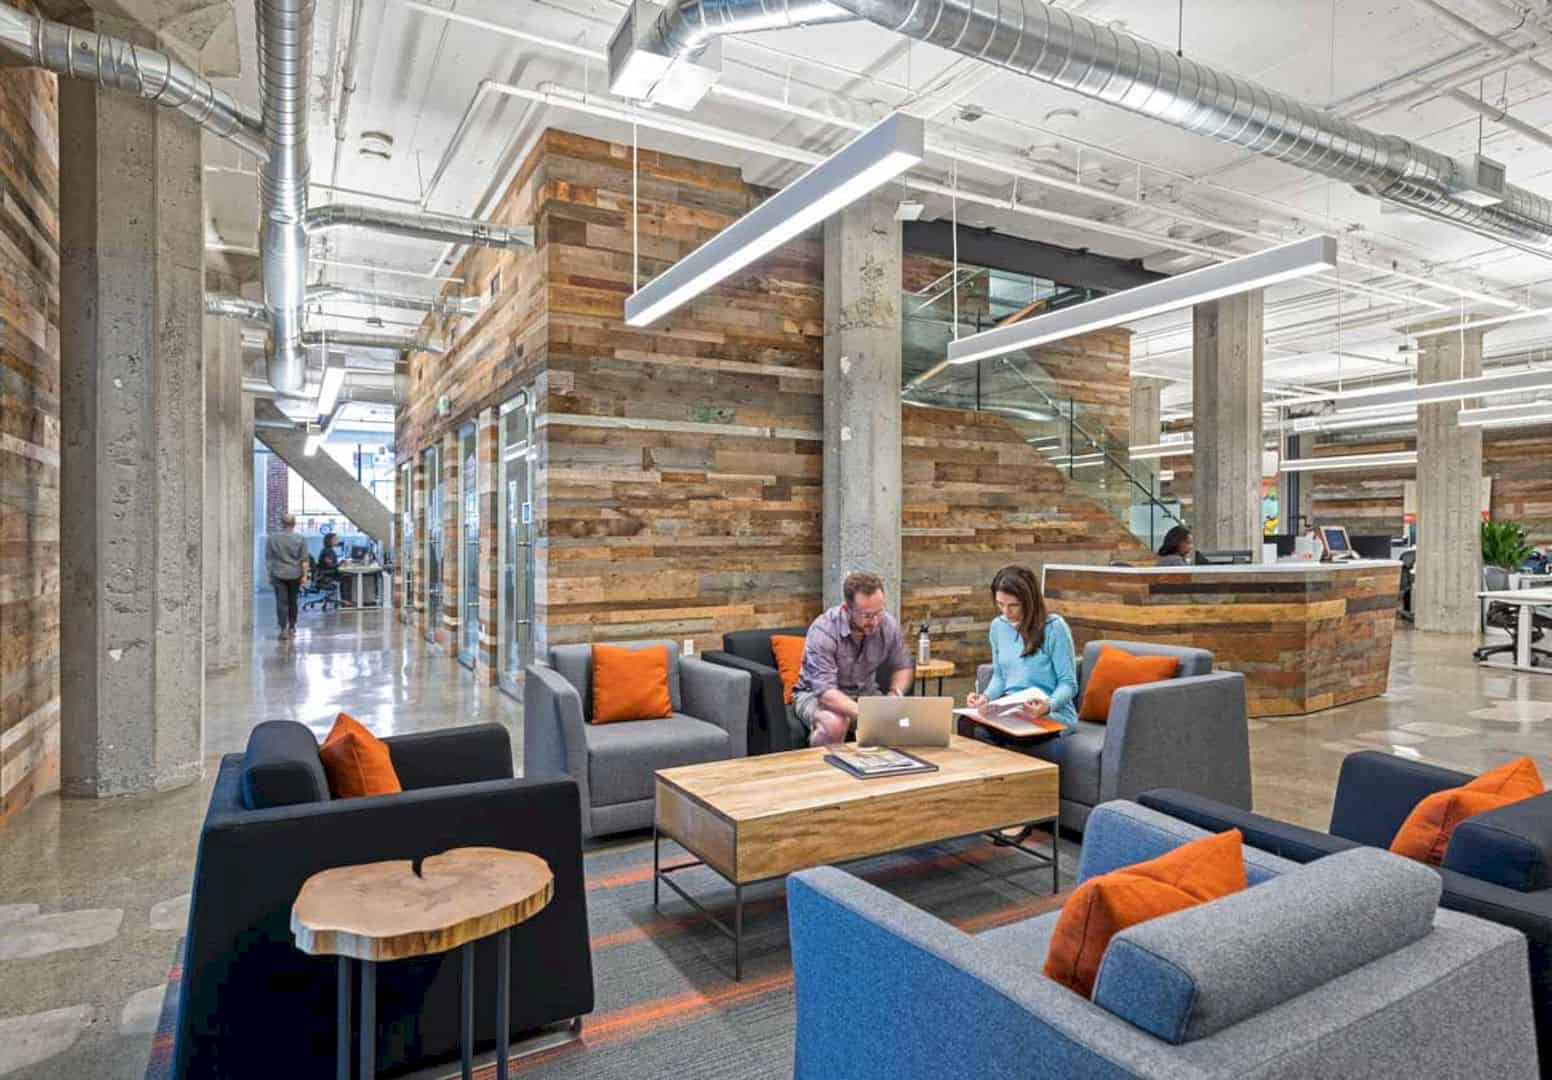 Rally Health: Redesign of 1980's Office Space with Contemporary Interior for New Work Areas